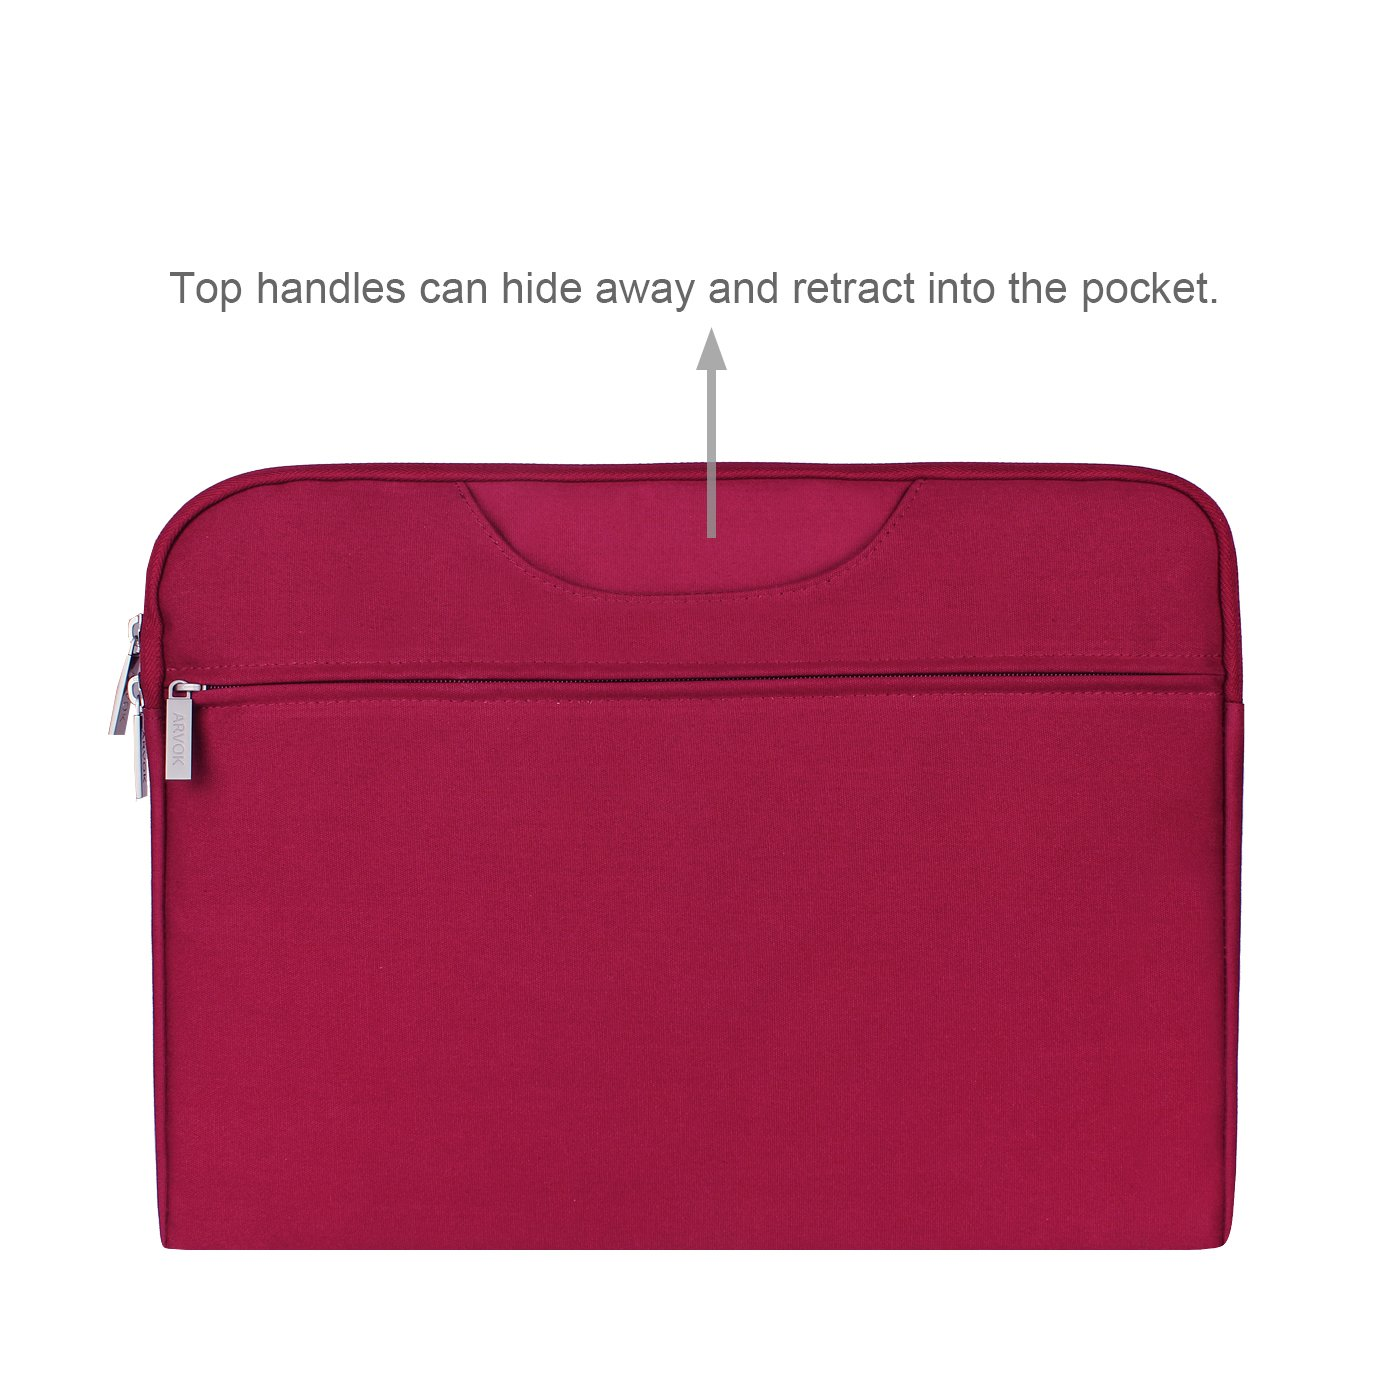 Arvok 15 15.6 16 Inch Water-resistant Canvas Fabric Laptop Sleeve With Handle&Zipper Pocket/Notebook Computer Case/Ultrabook Briefcase Carrying Bag/Pouch Cover For Acer/Asus/Dell/Lenovo/HP,Wine Red by ARVOK (Image #3)